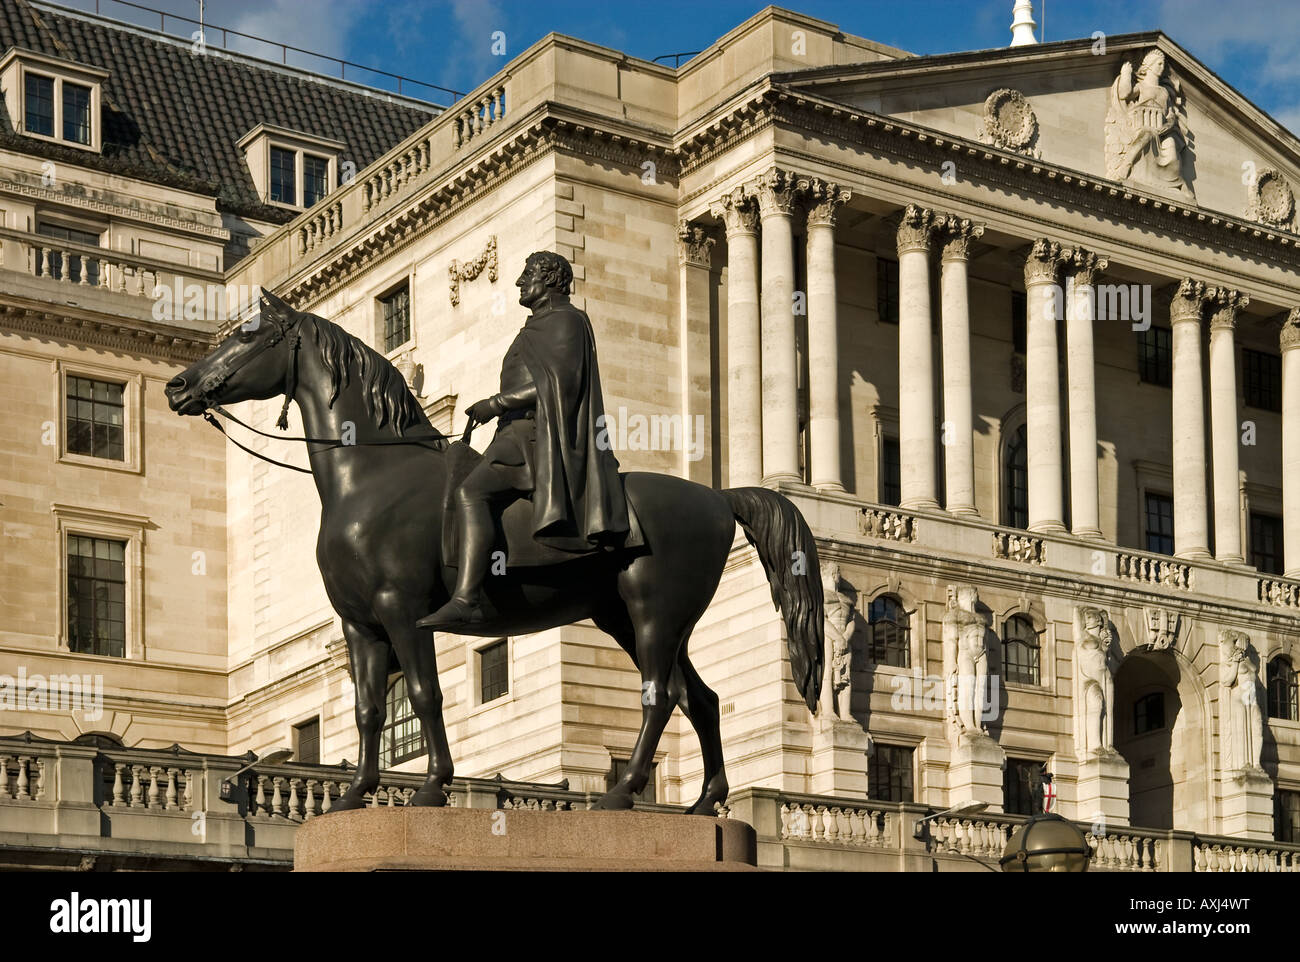 Threadneedle Street, London. Featuring The Bank Of England And Statue Of Wellington On Horsenack - Stock Image